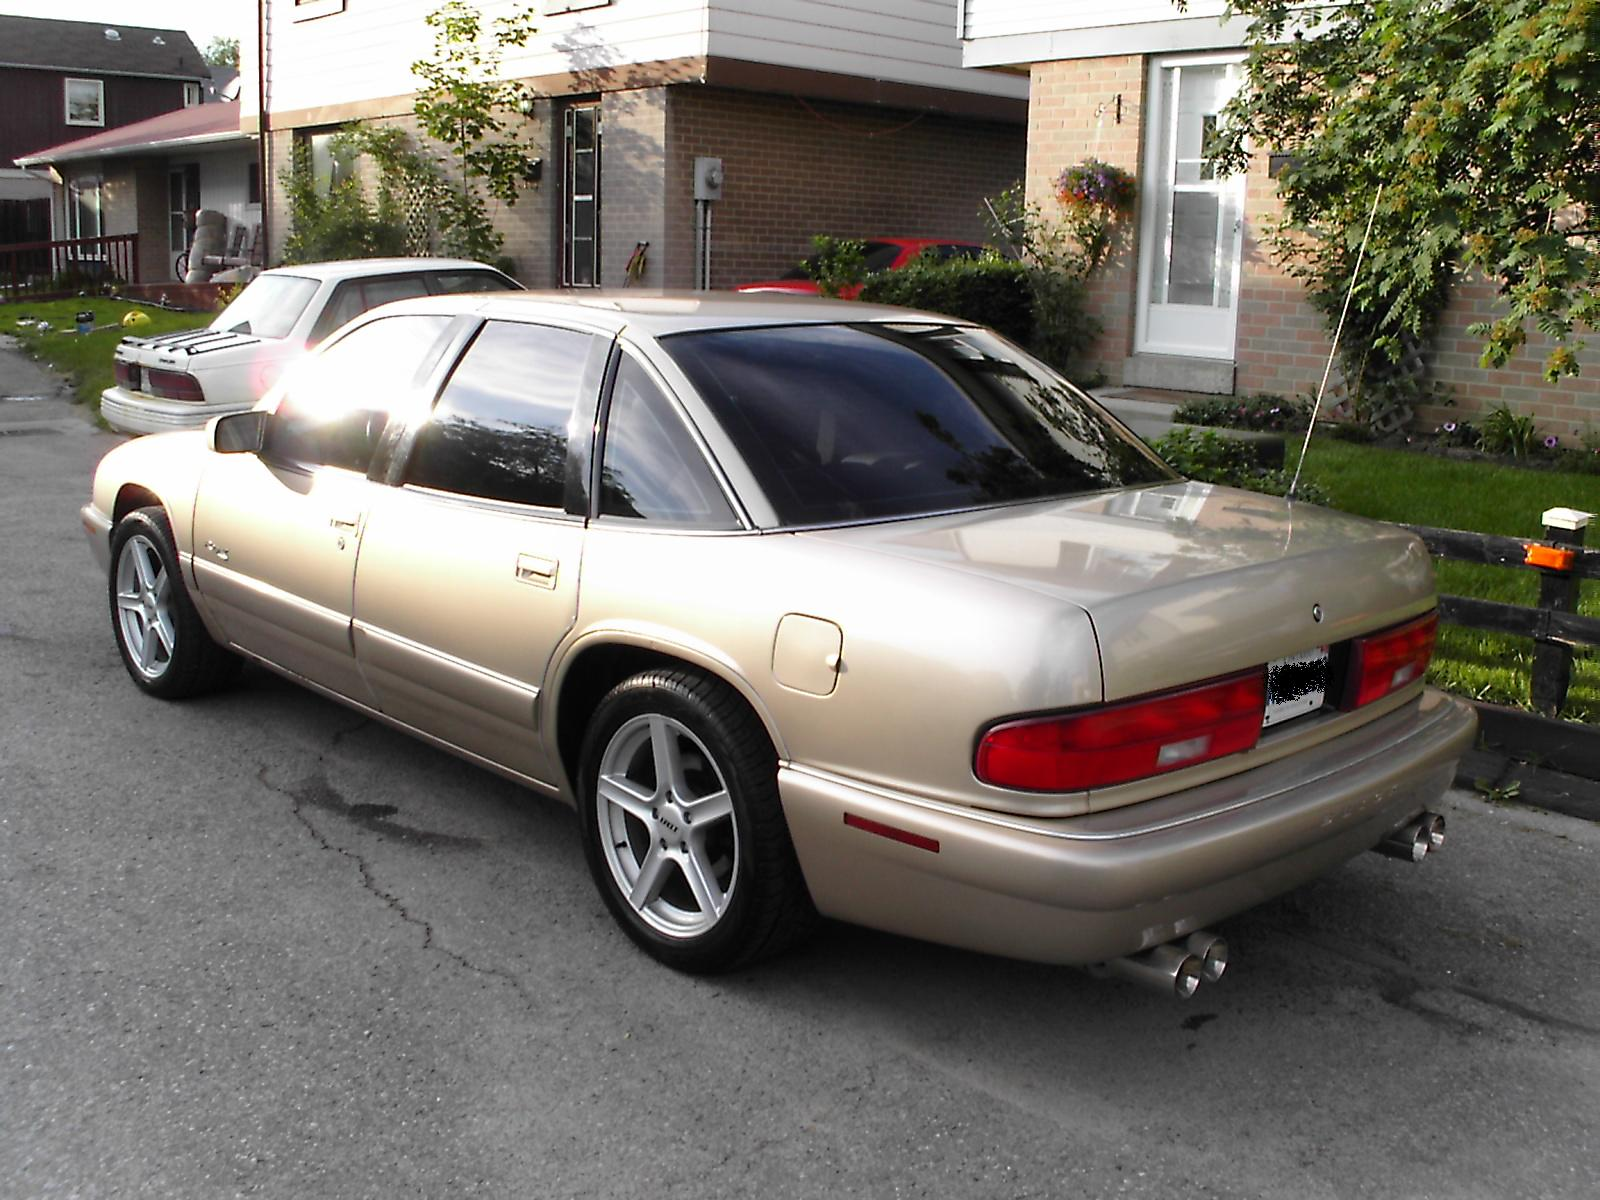 1994 Buick Regal 4 Dr Custom Sedan picture